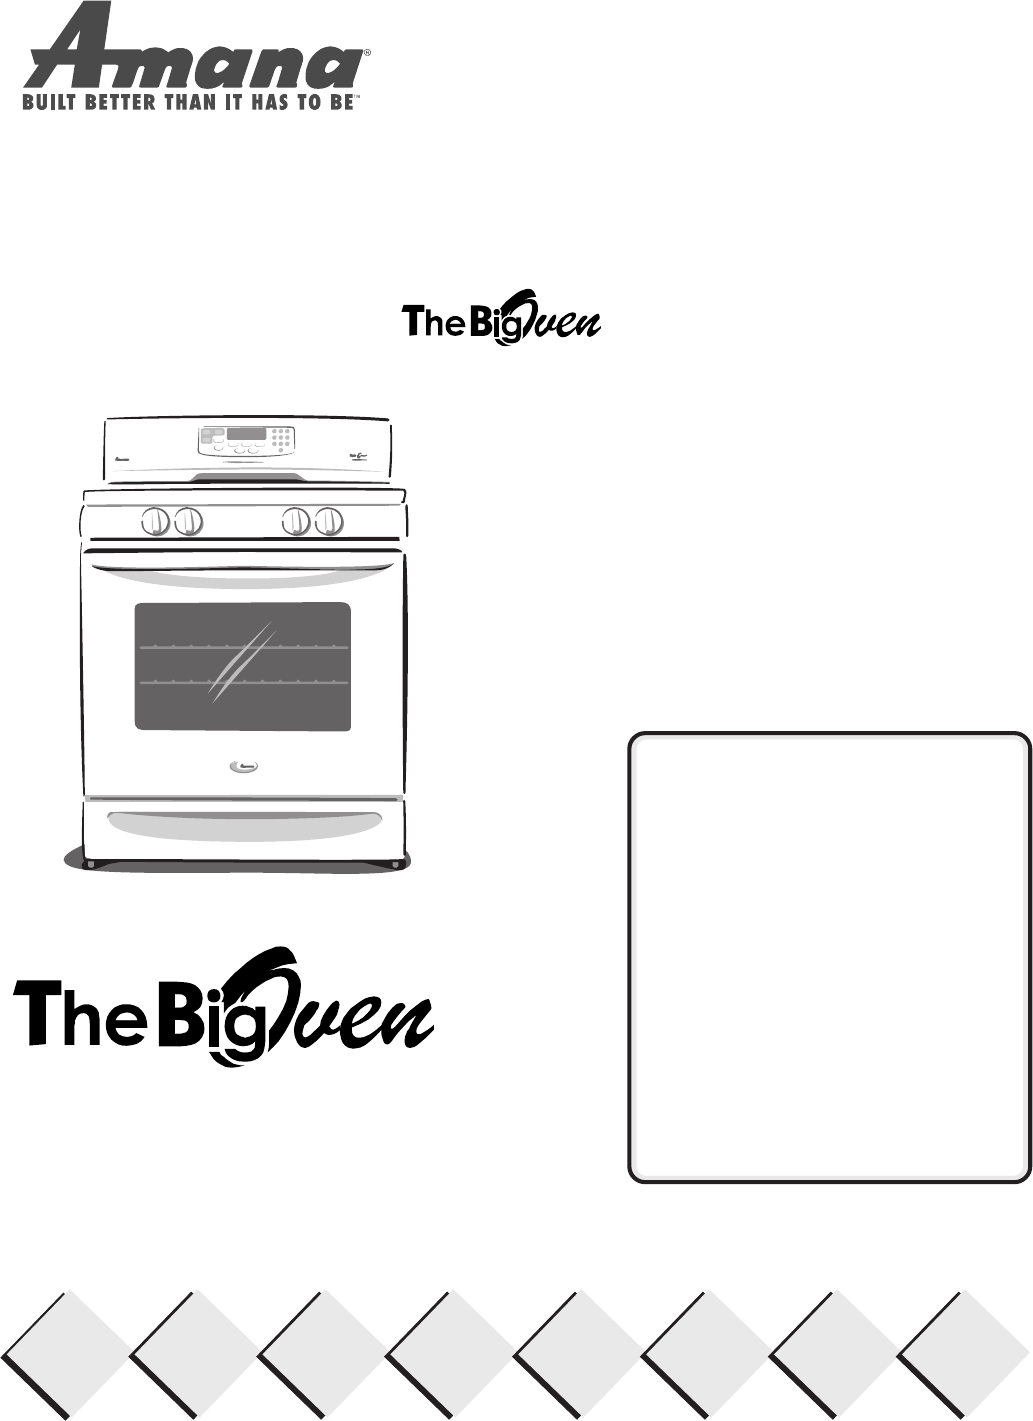 Amana Oven The Big Oven Gas Range User Guide